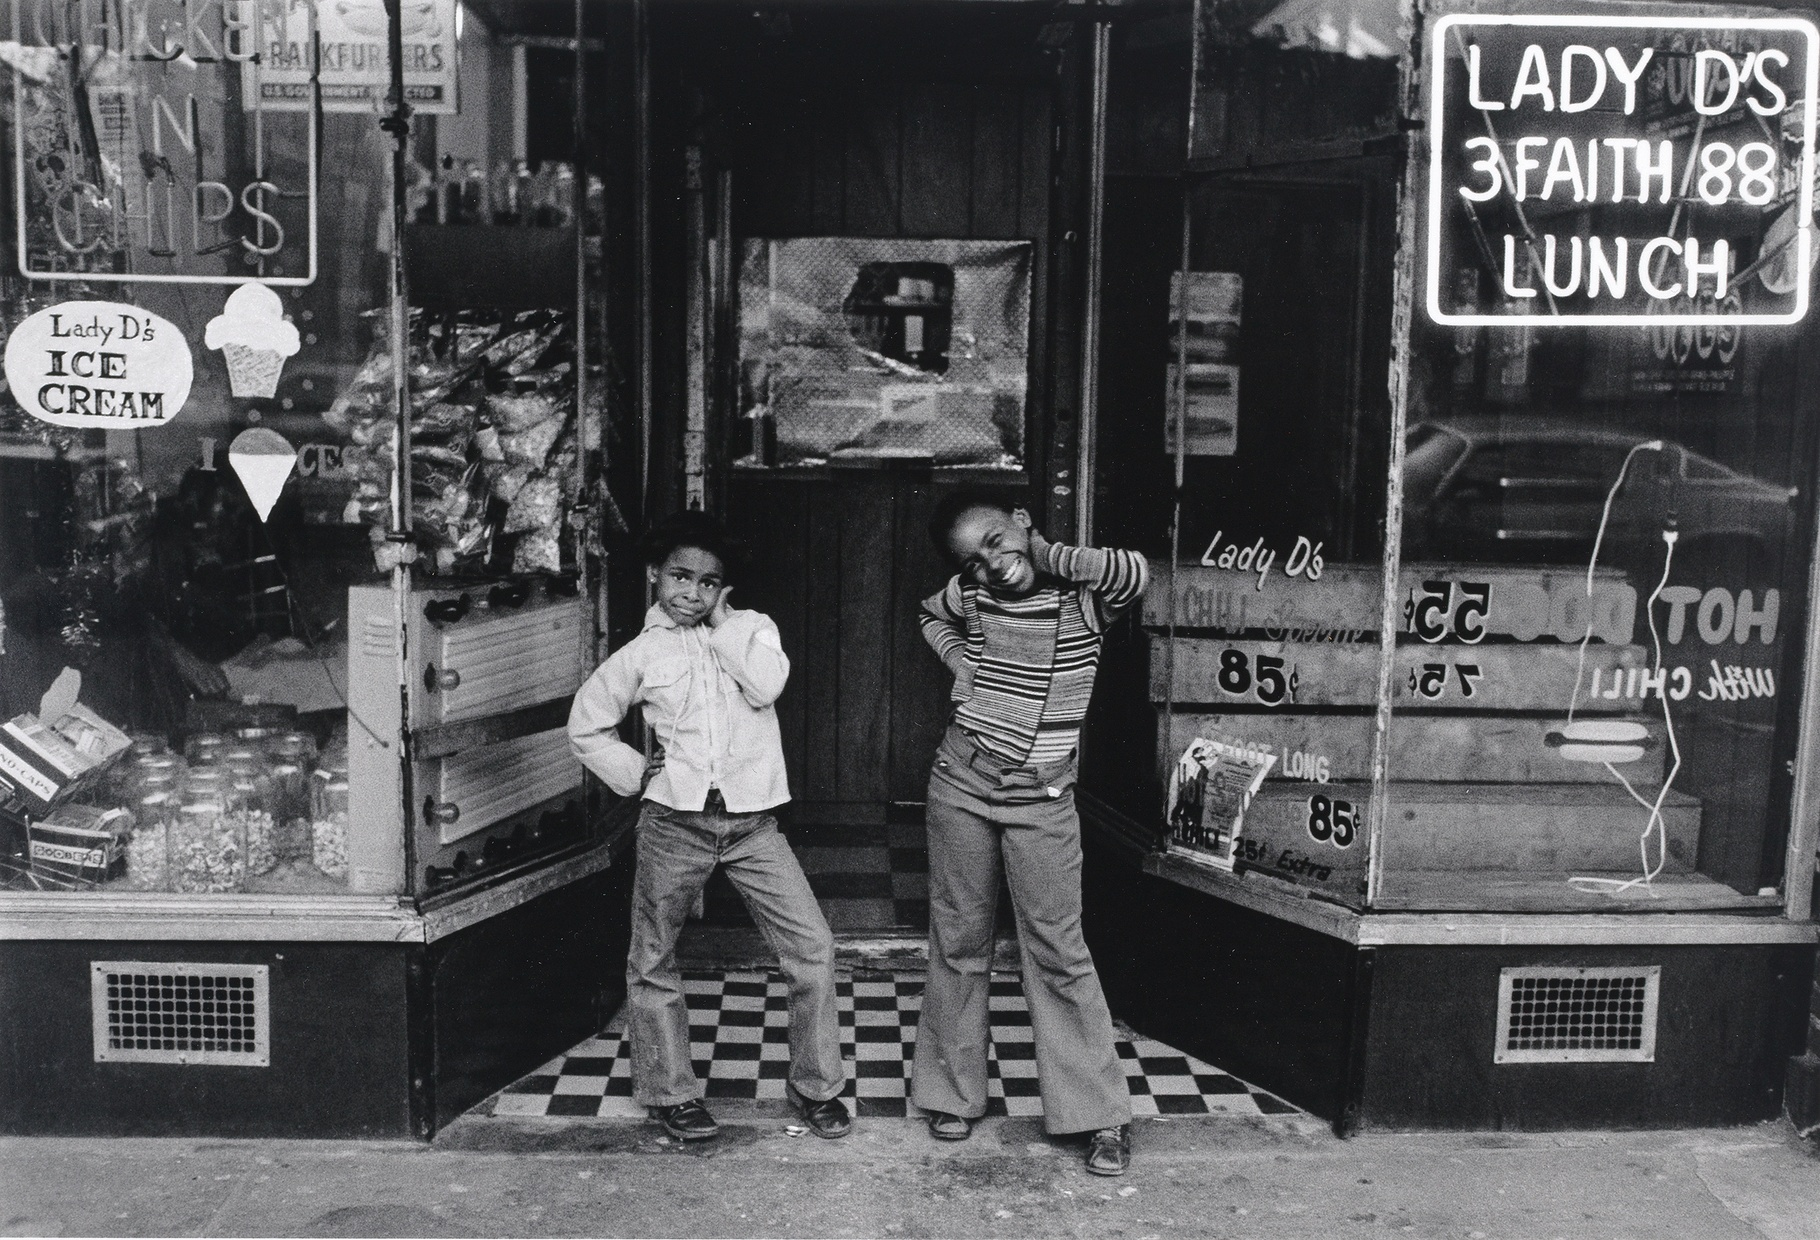 A black and white photograph of two, young, Black girls posing in front of an old ice cream store.